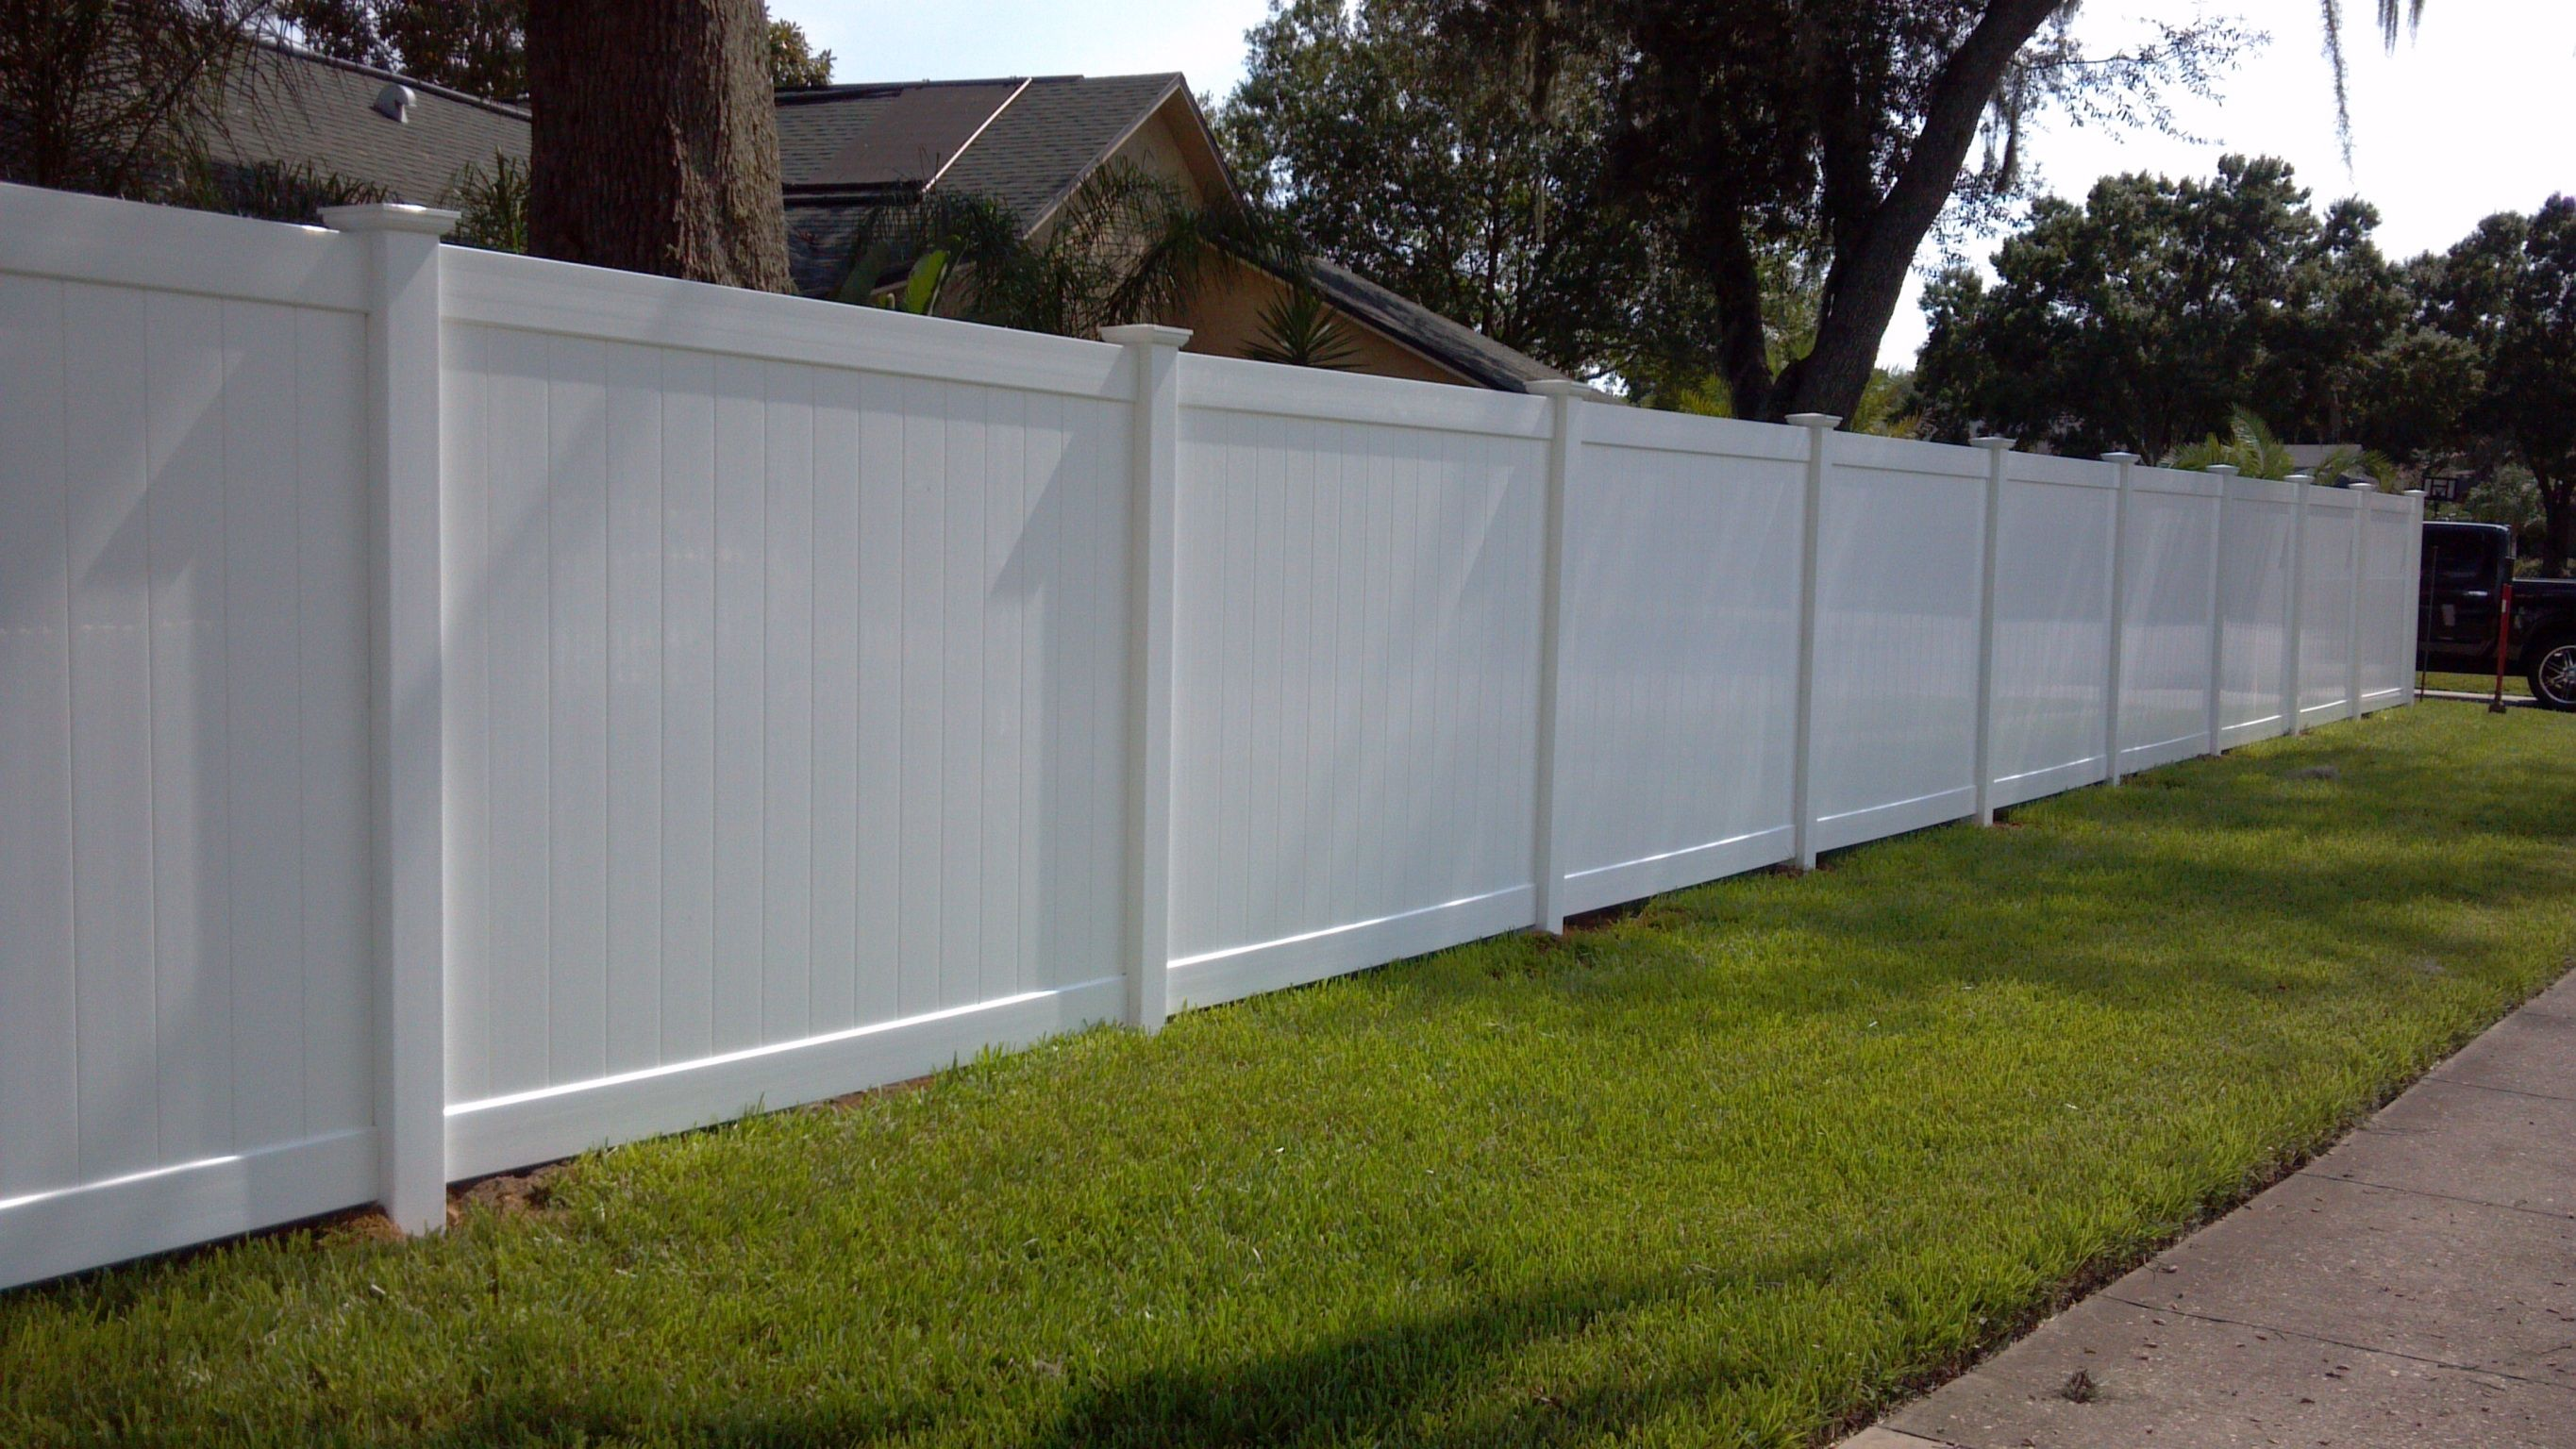 Hekwerk Prijzen Outdoor Yard Vinyl Fences Prices Cheap Pvc And Wpc Fence